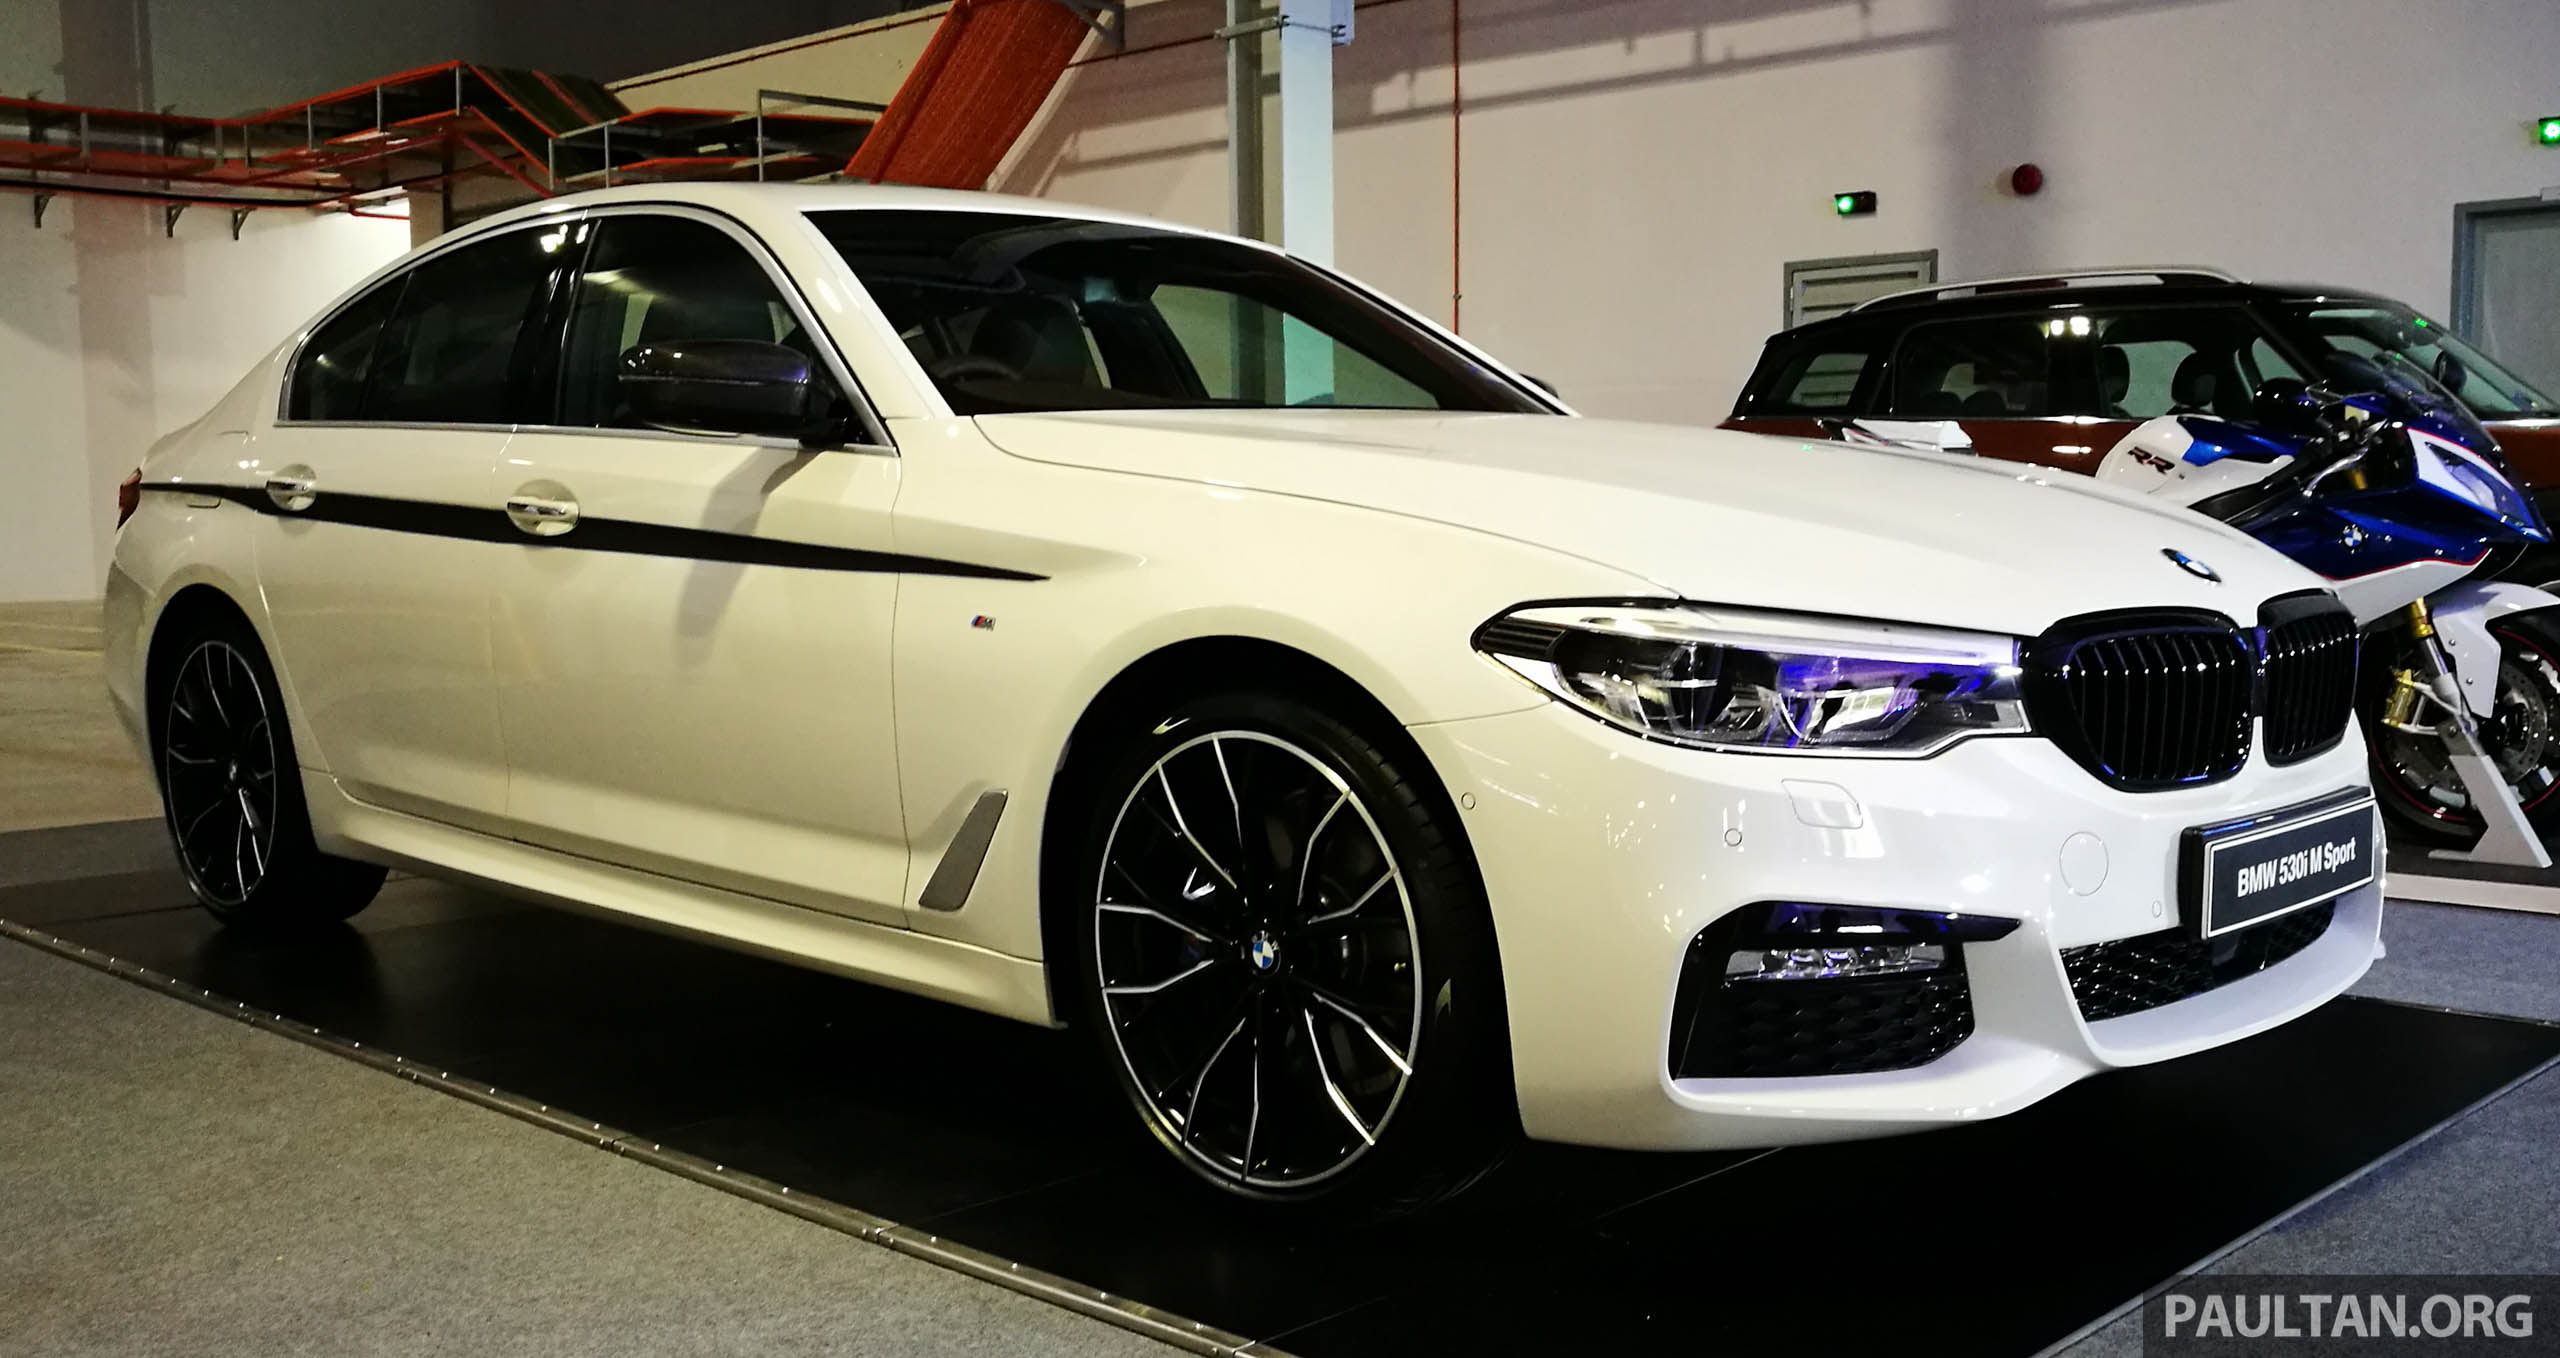 Galeri Bmw 530i G30 M Performance Kini Di M Sia Paul Tan